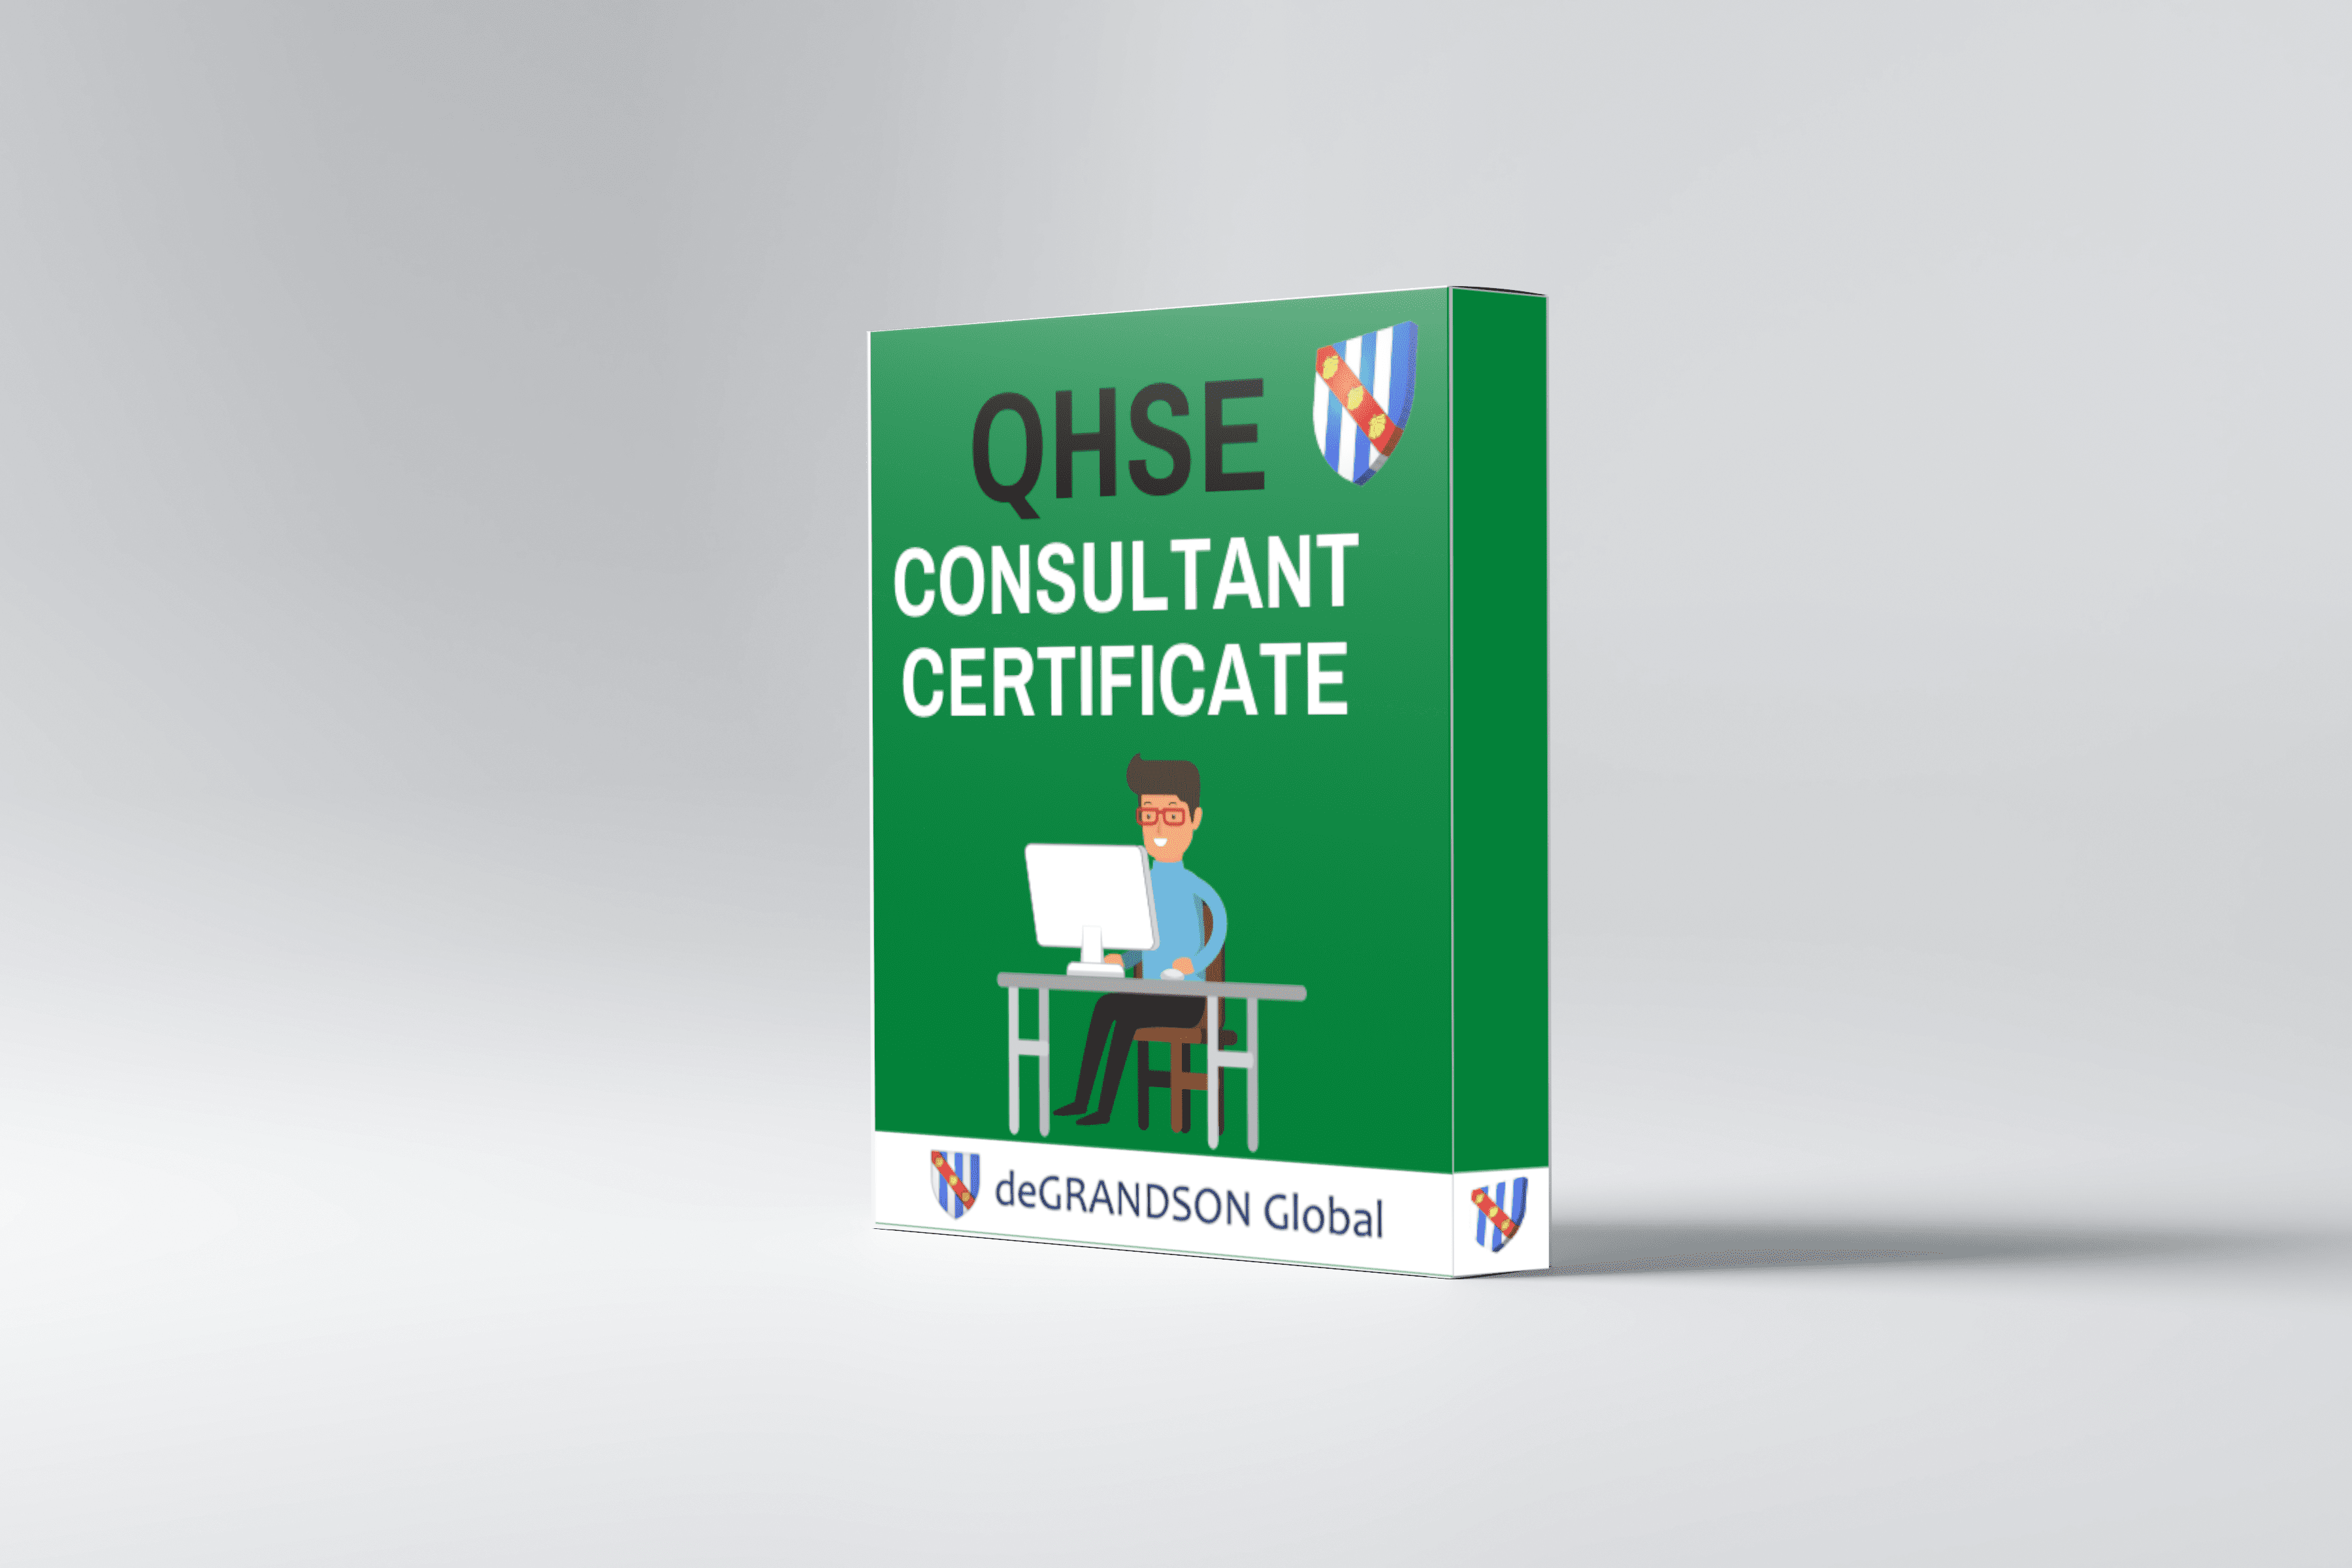 QHSE Consultant Certificate Product